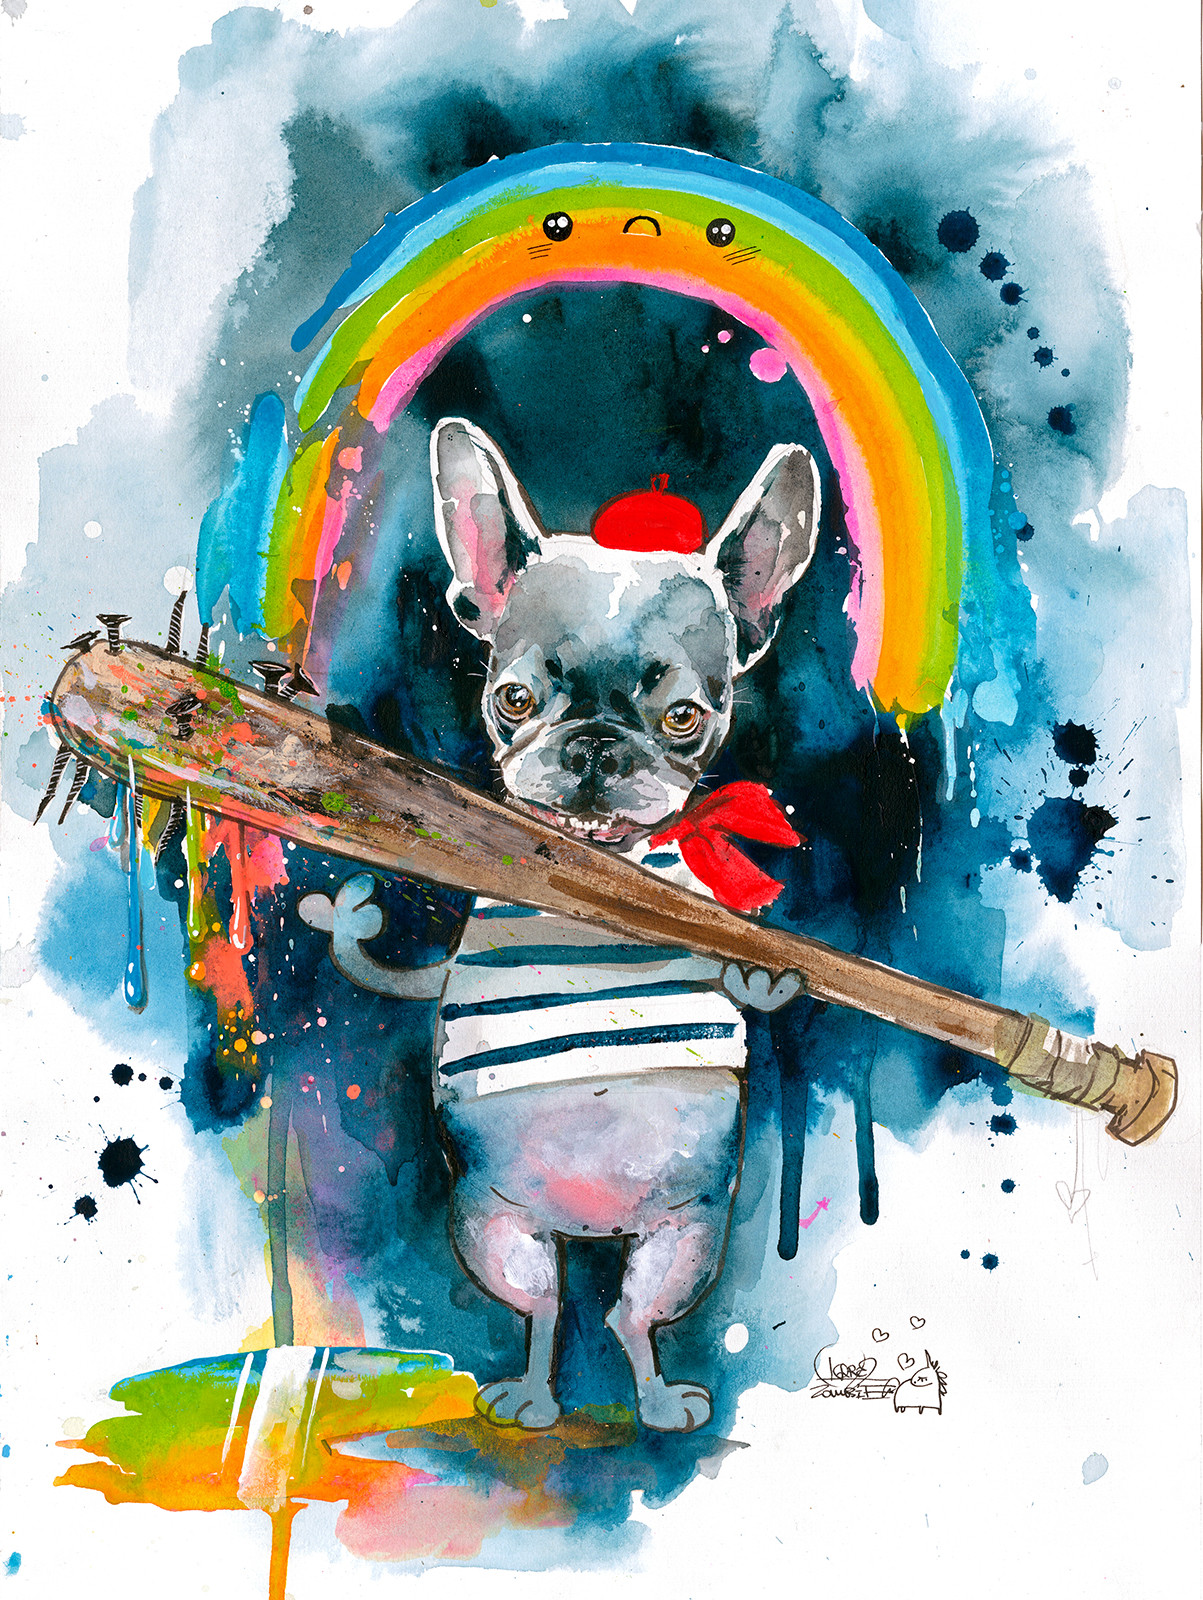 Frenchie-by-Lora-Zombie-Fine-art-prints-of-Frenchie-are-available-at-Eyes-On-Walls-wallpaper-wp5605053